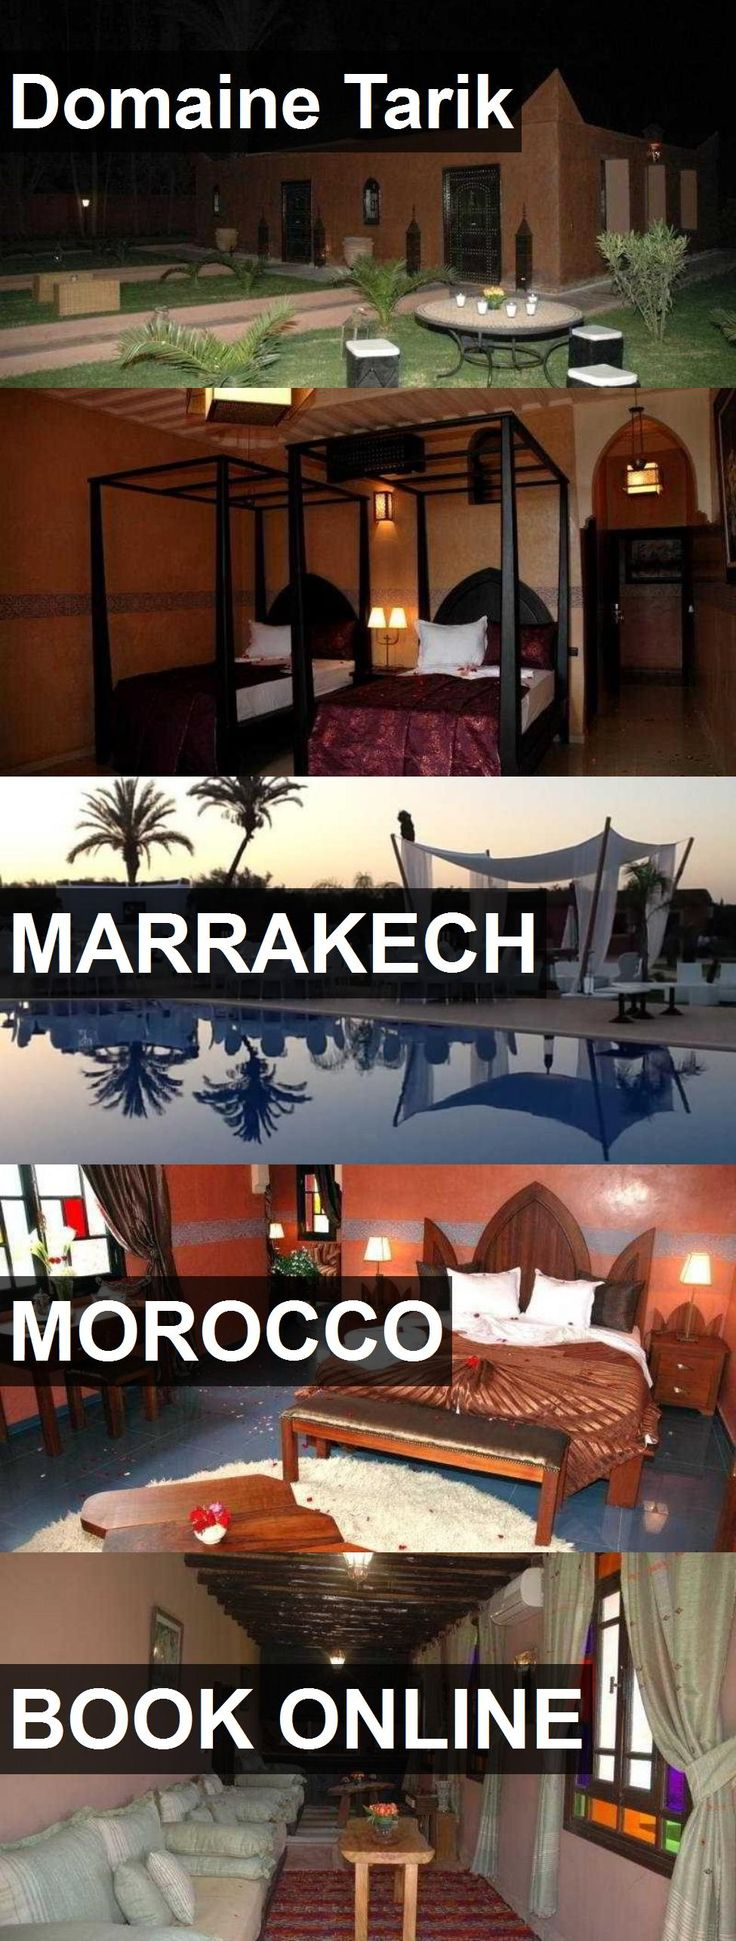 Hotel Domaine Tarik in Marrakech, Morocco. For more information, photos, reviews and best prices please follow the link. #Morocco #Marrakech #hotel #travel #vacation